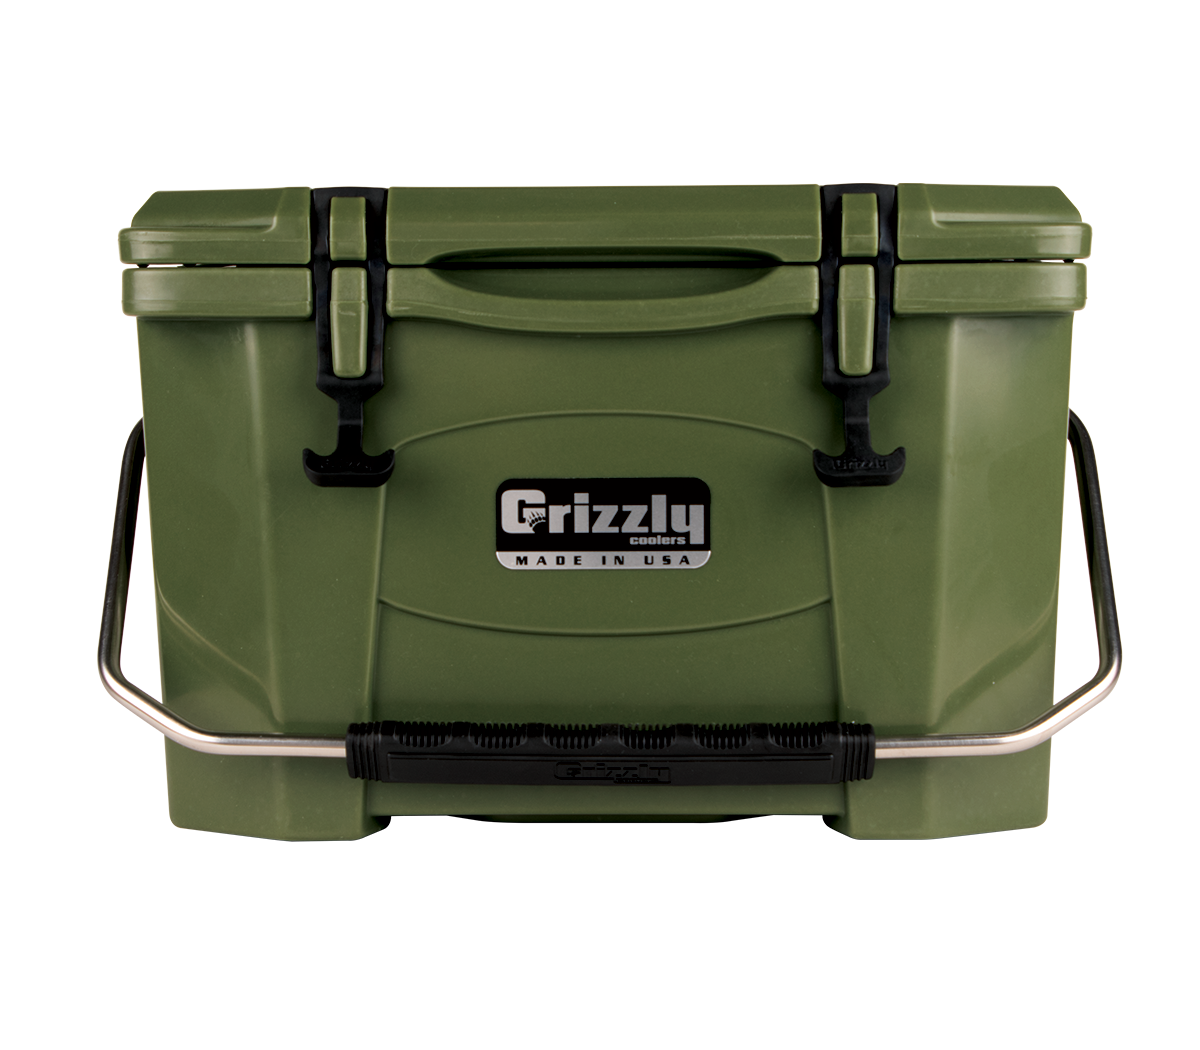 Transparent scratches grizzly. Heavy duty coolers camping